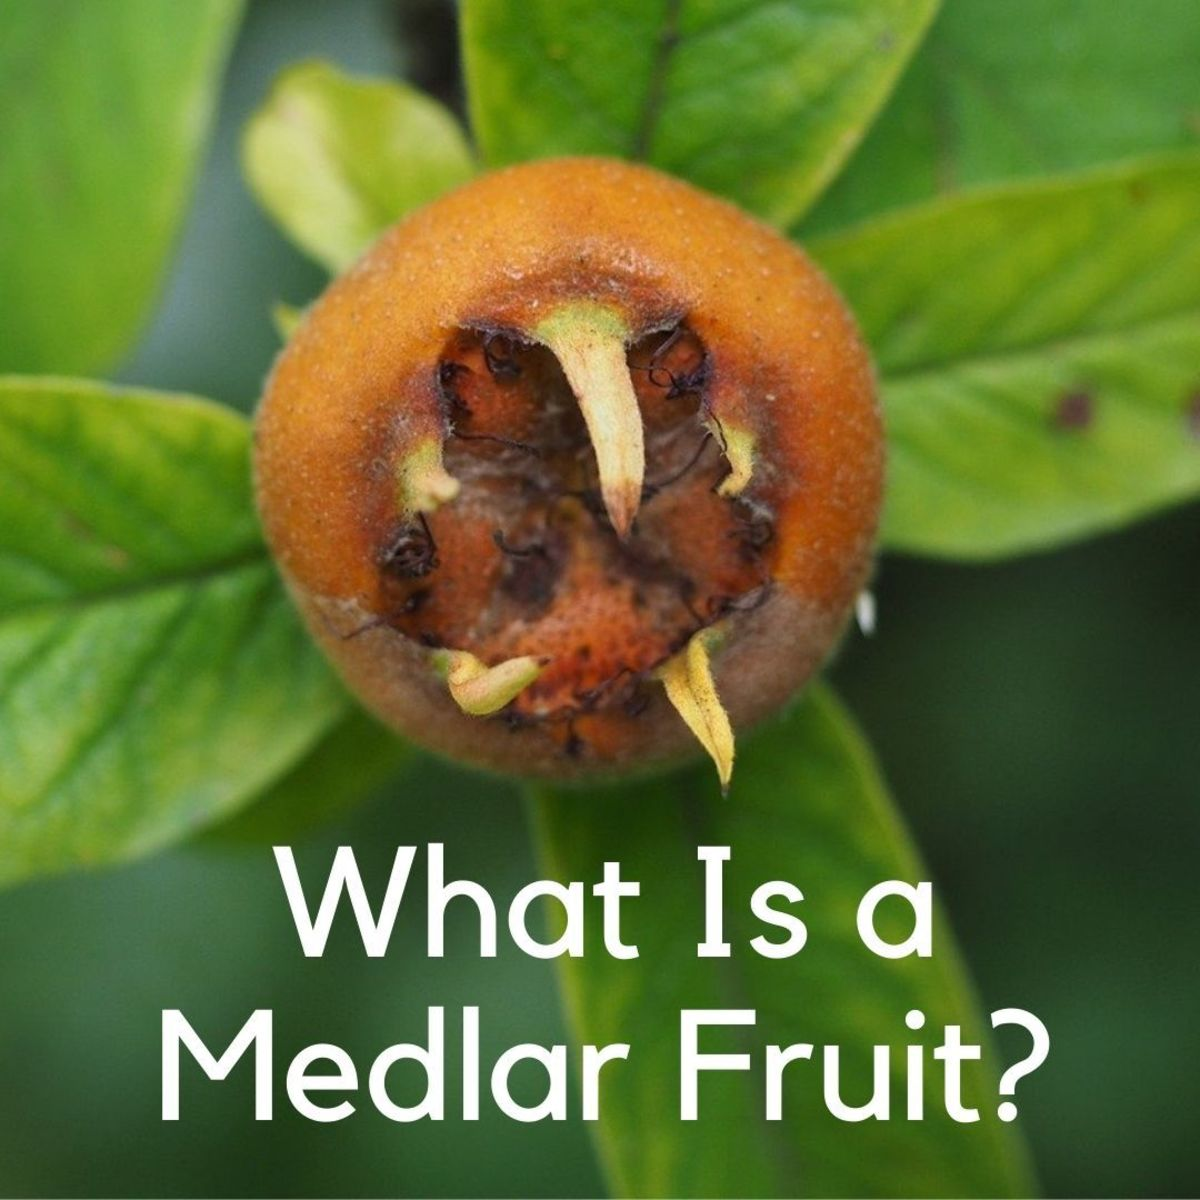 The medlar (Mespilus) belongs to the Rosaceae family.